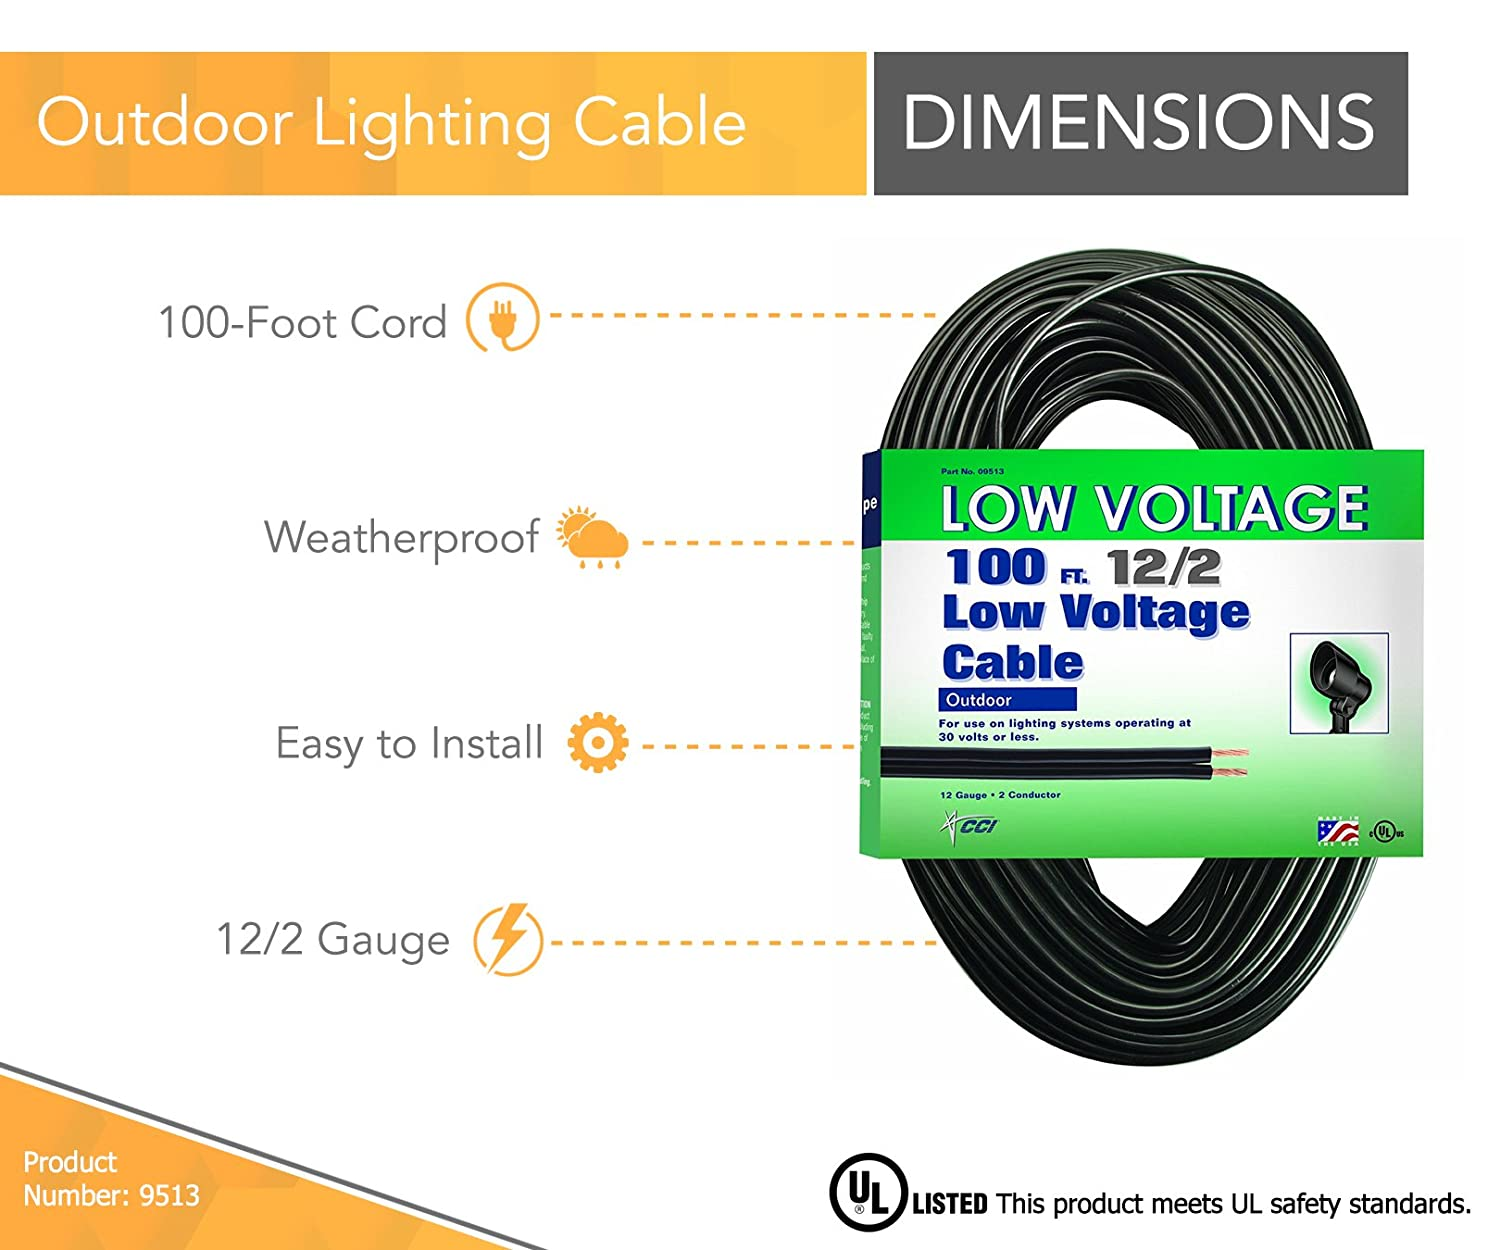 Coleman Cable Low Voltage Outdoor Lighting Cable (100 Ft, 12/2 gauge ...